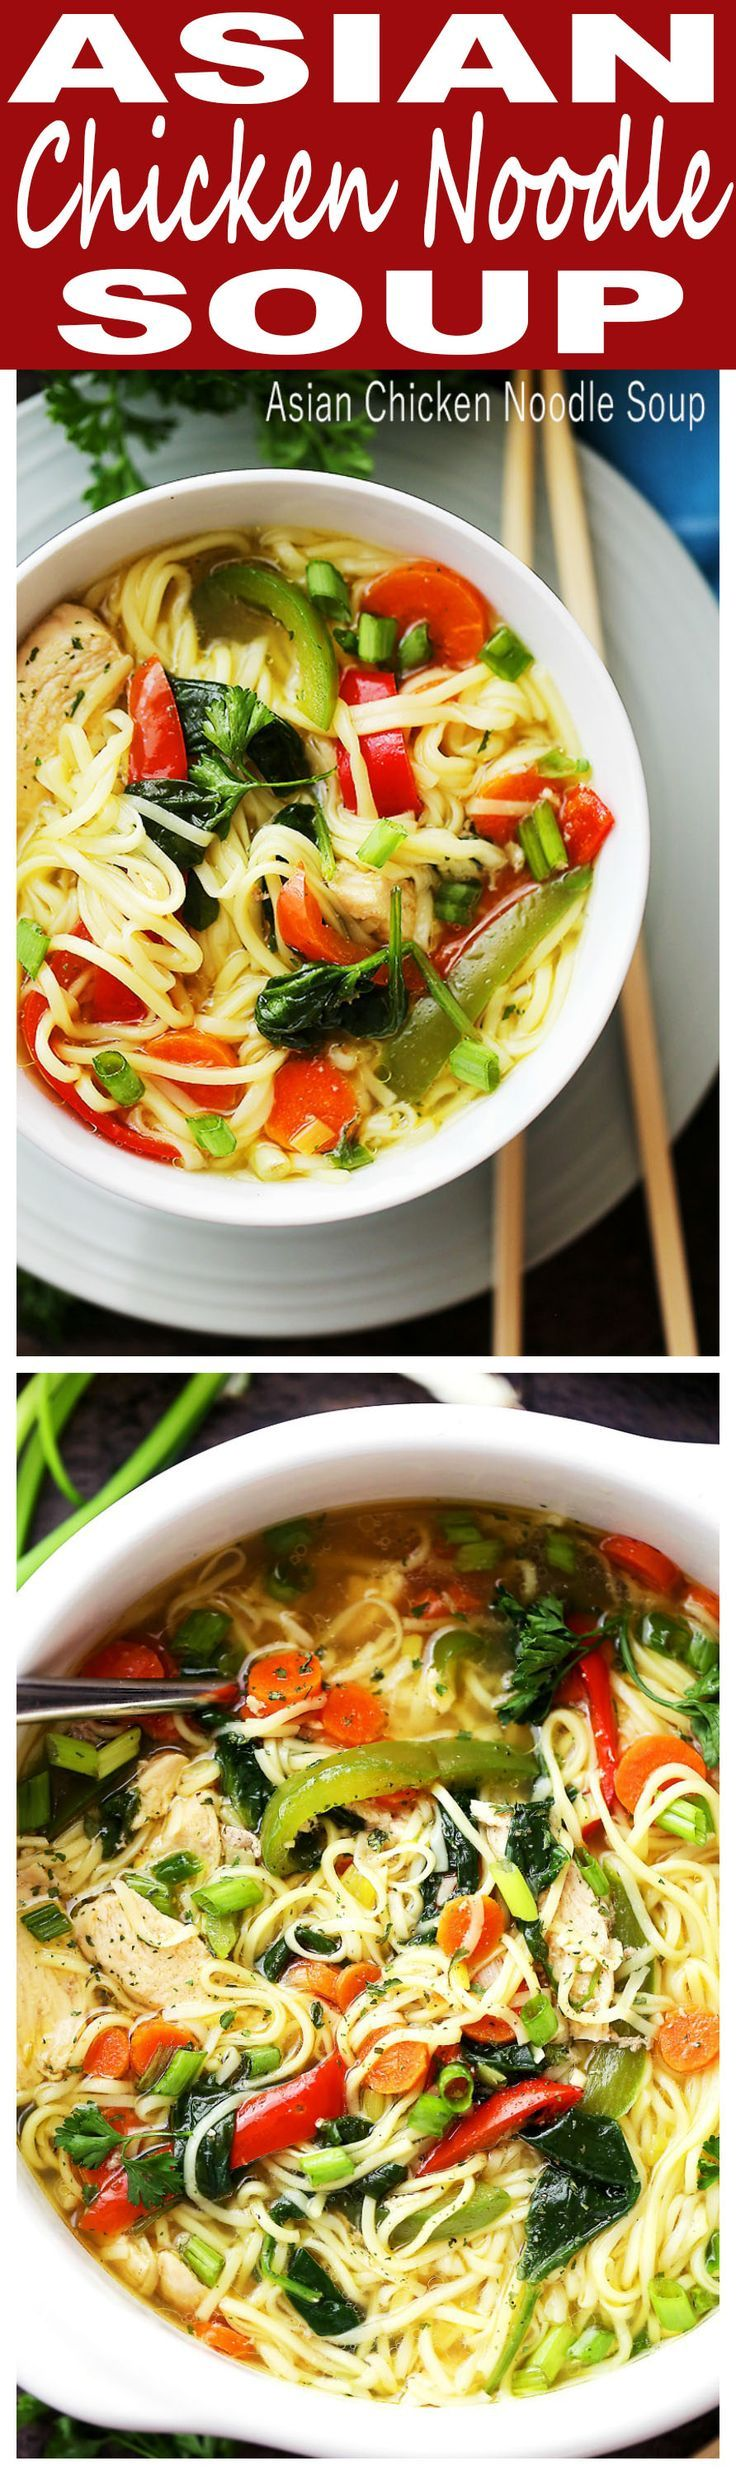 Asian Chicken Noodle Soup | www.diethood.com | A flavorful and delicious twist on the classic Chicken Noodle Soup featuring ginger, teriyaki sauce, egg noodles, and colorful vegetables! Ready in about 30 minutes!